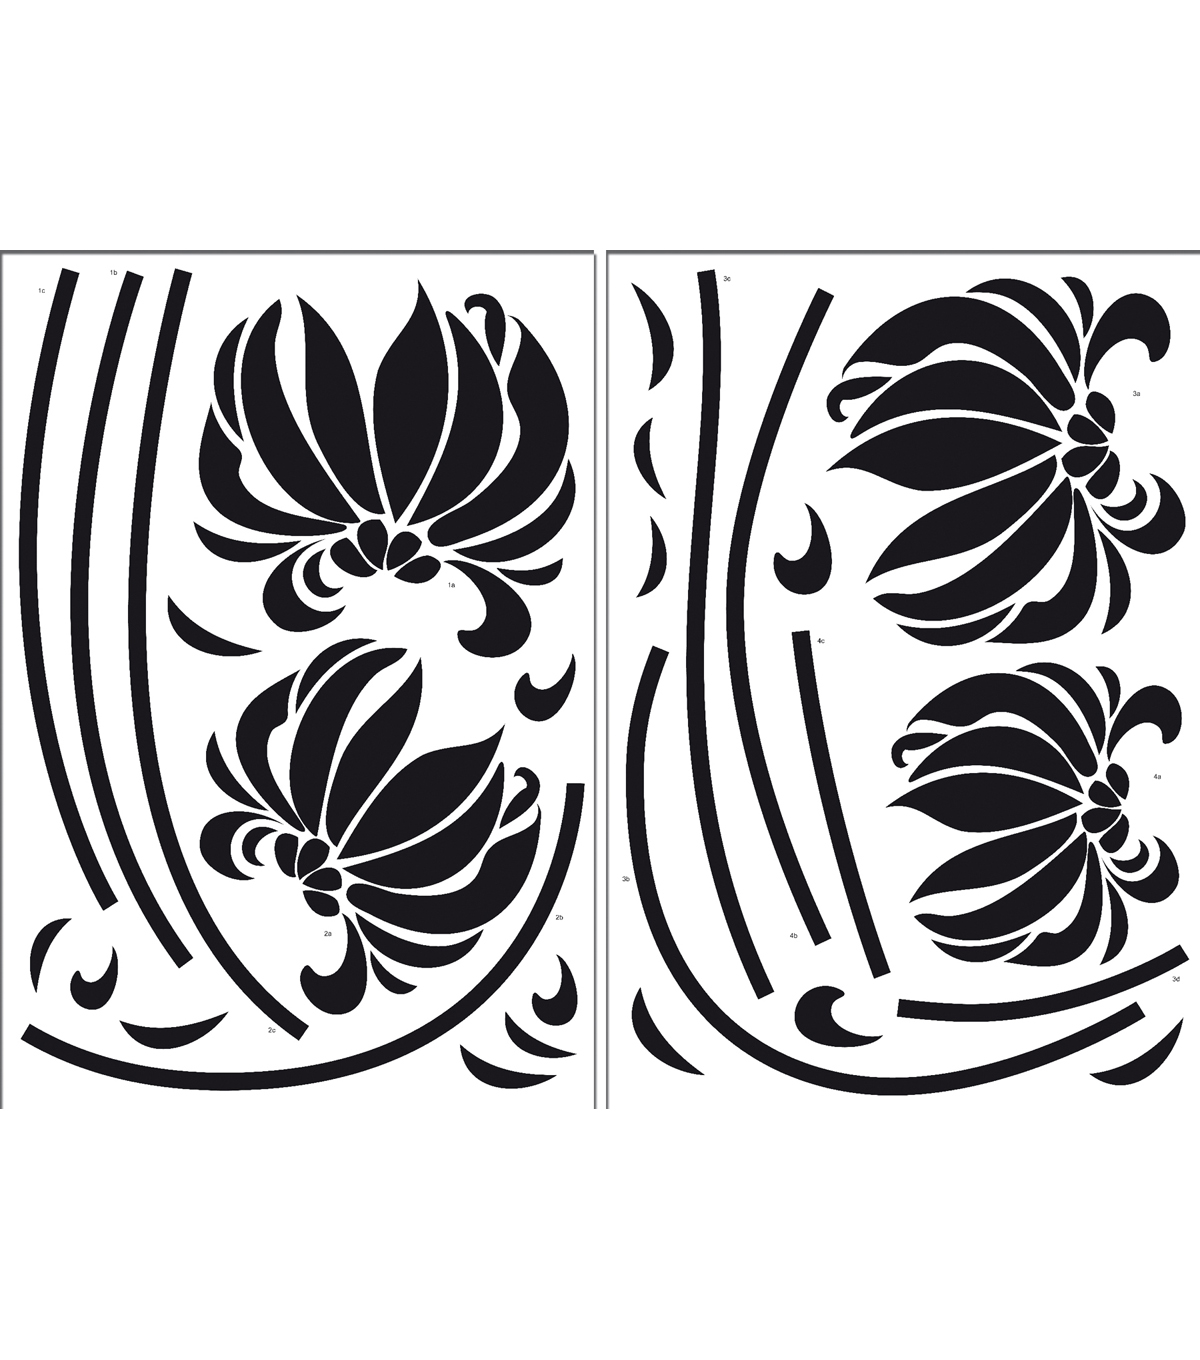 Home Decor Black Flowers Wall Decal, 28 Piece Set